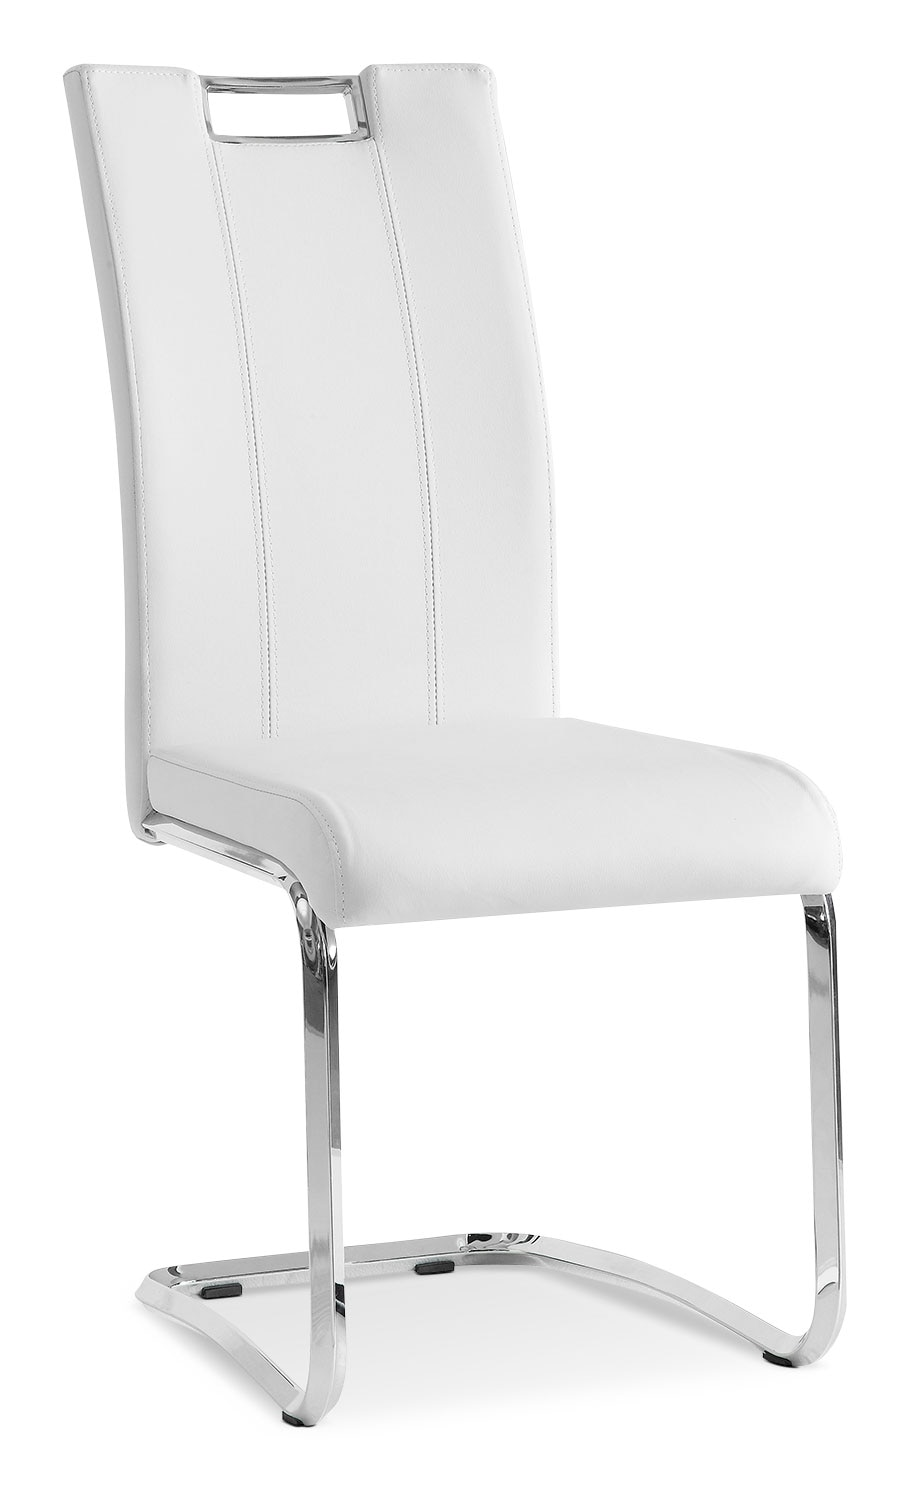 Dining Room Furniture - Tuxedo Side Chair